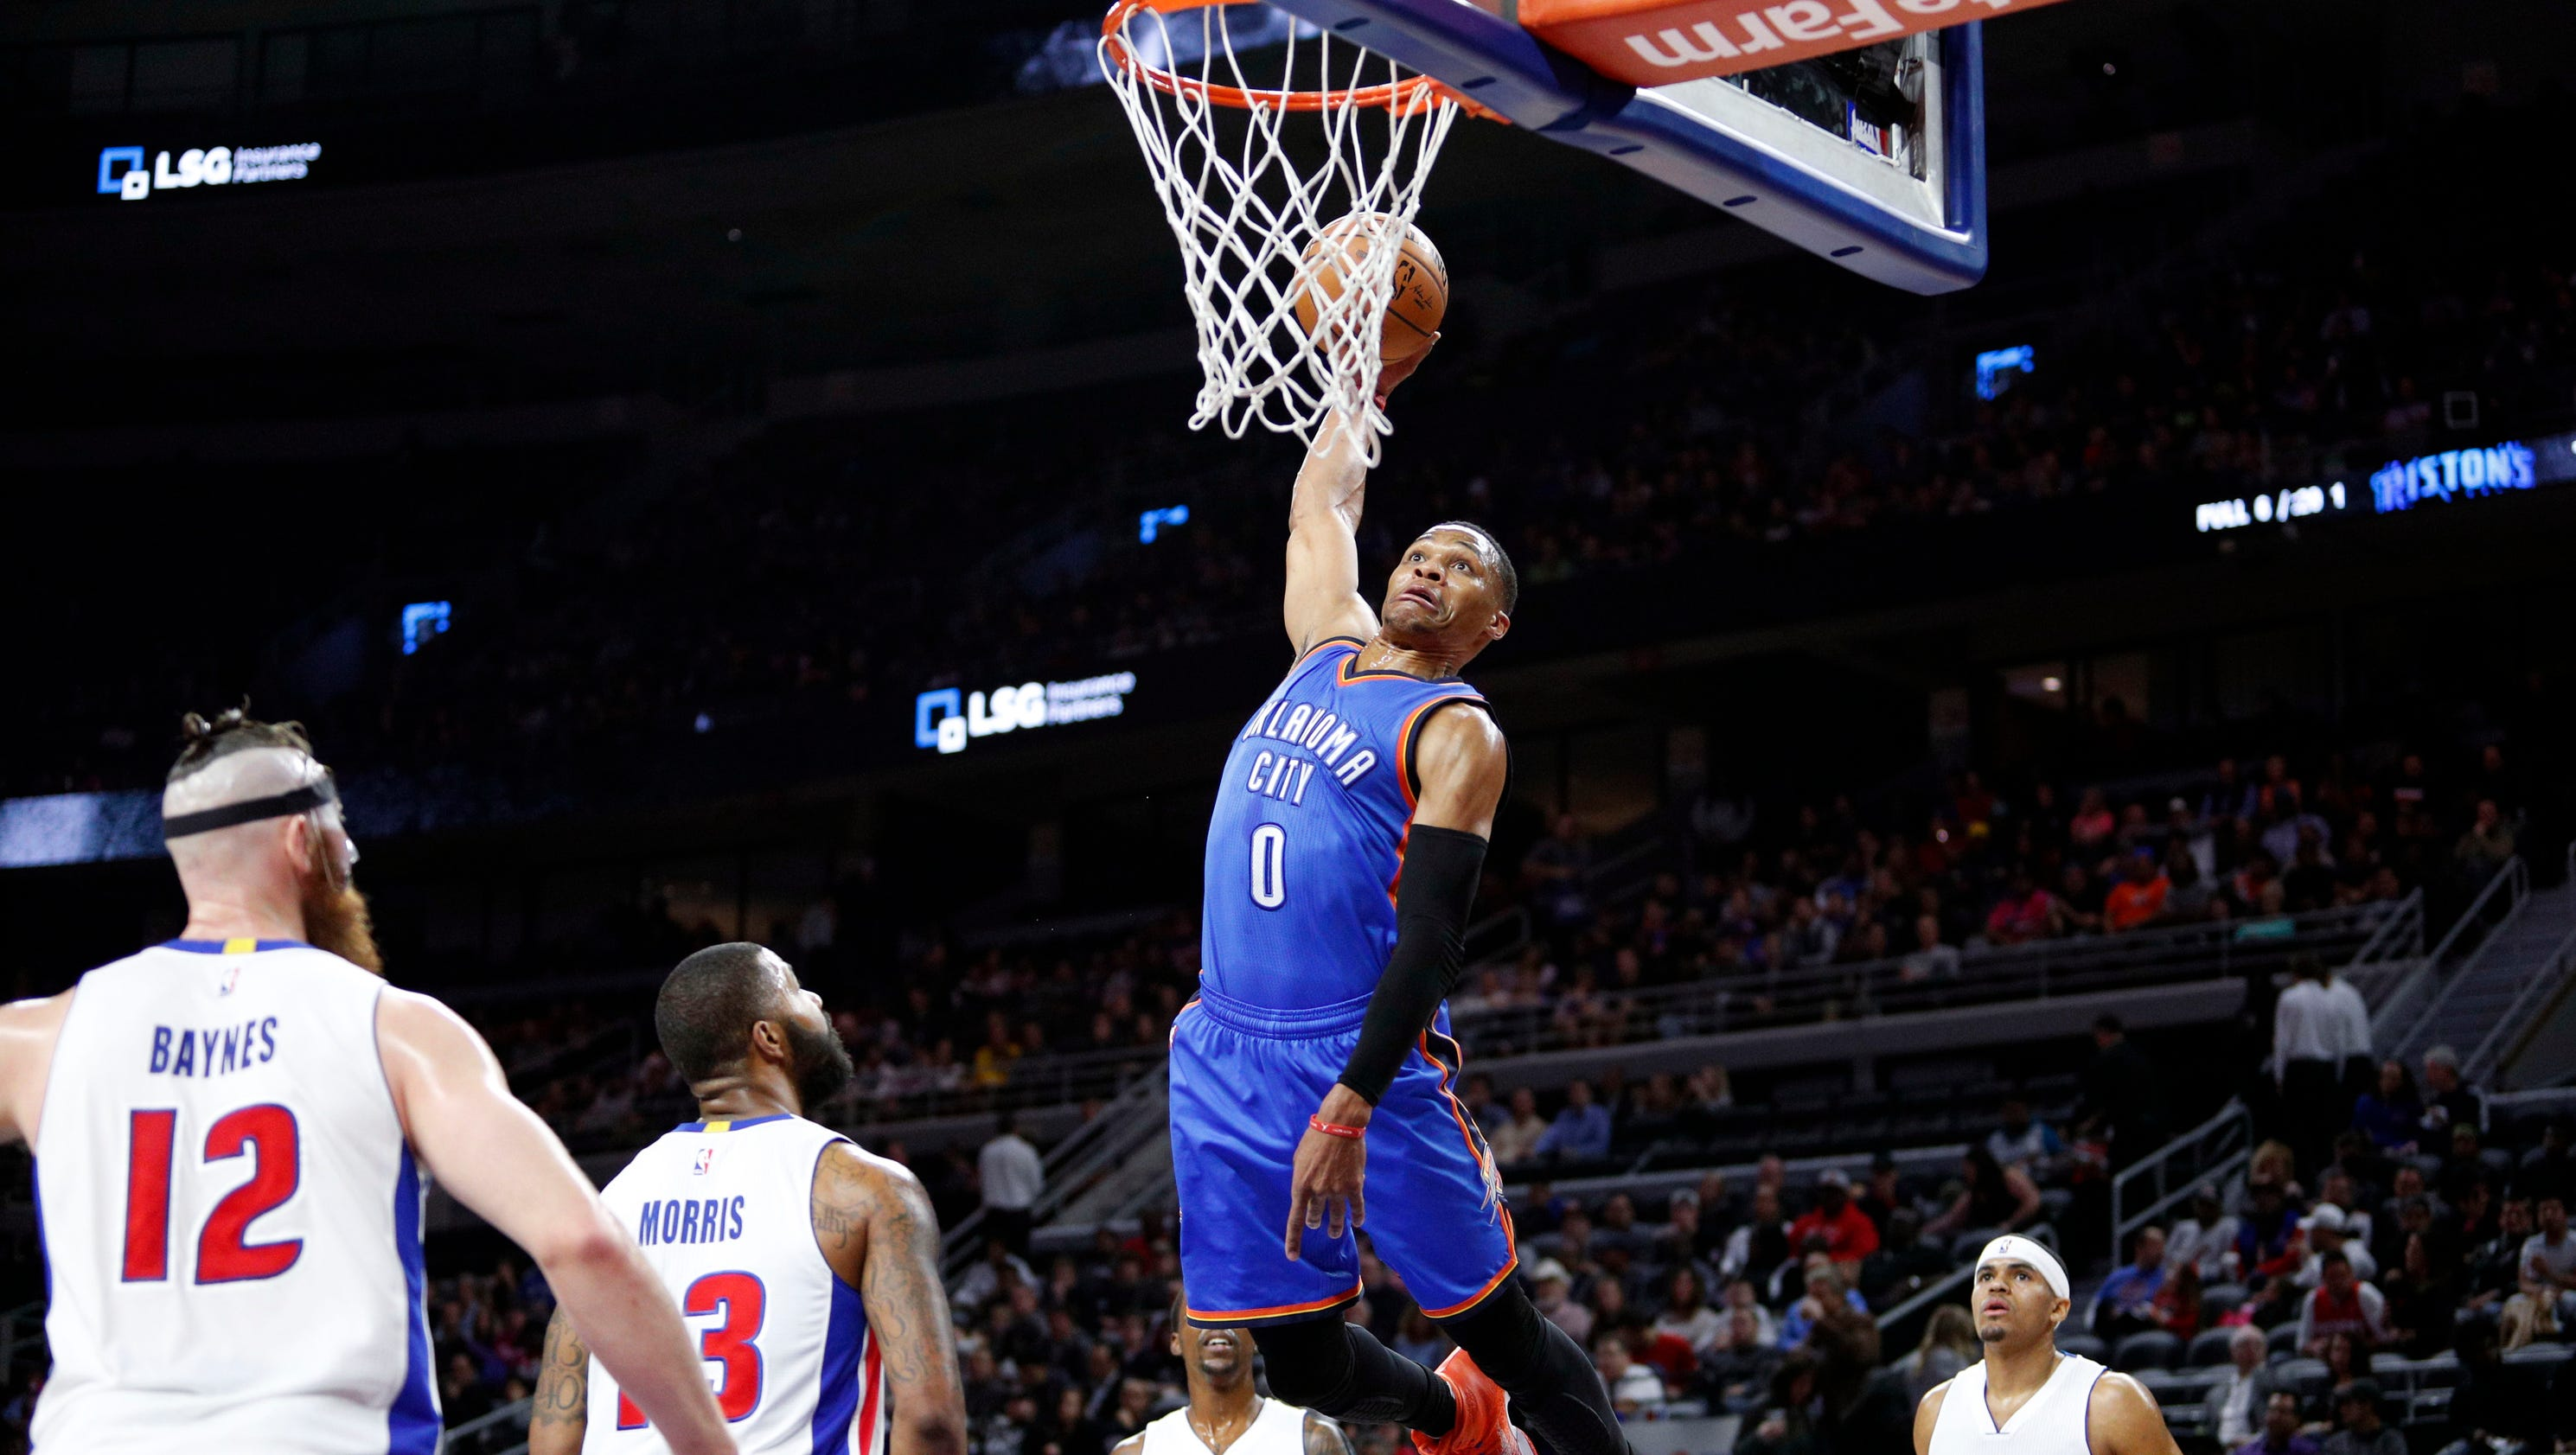 The Pistons wanted no part of this Russell Westbrook dunk